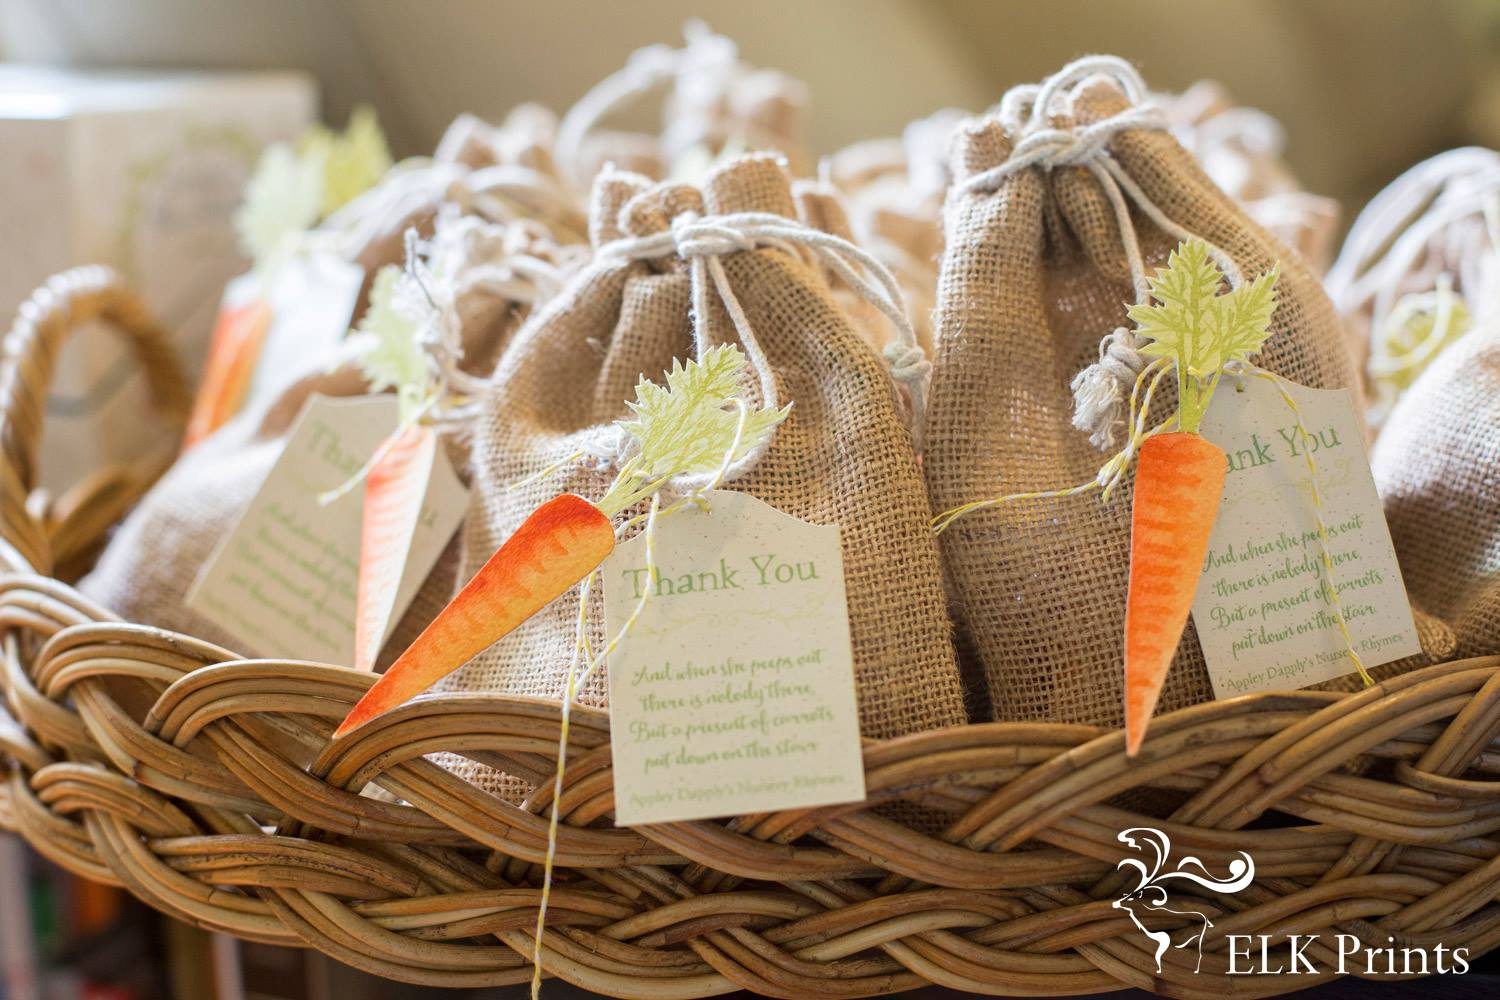 Custom carrot favour bags - Elk prints